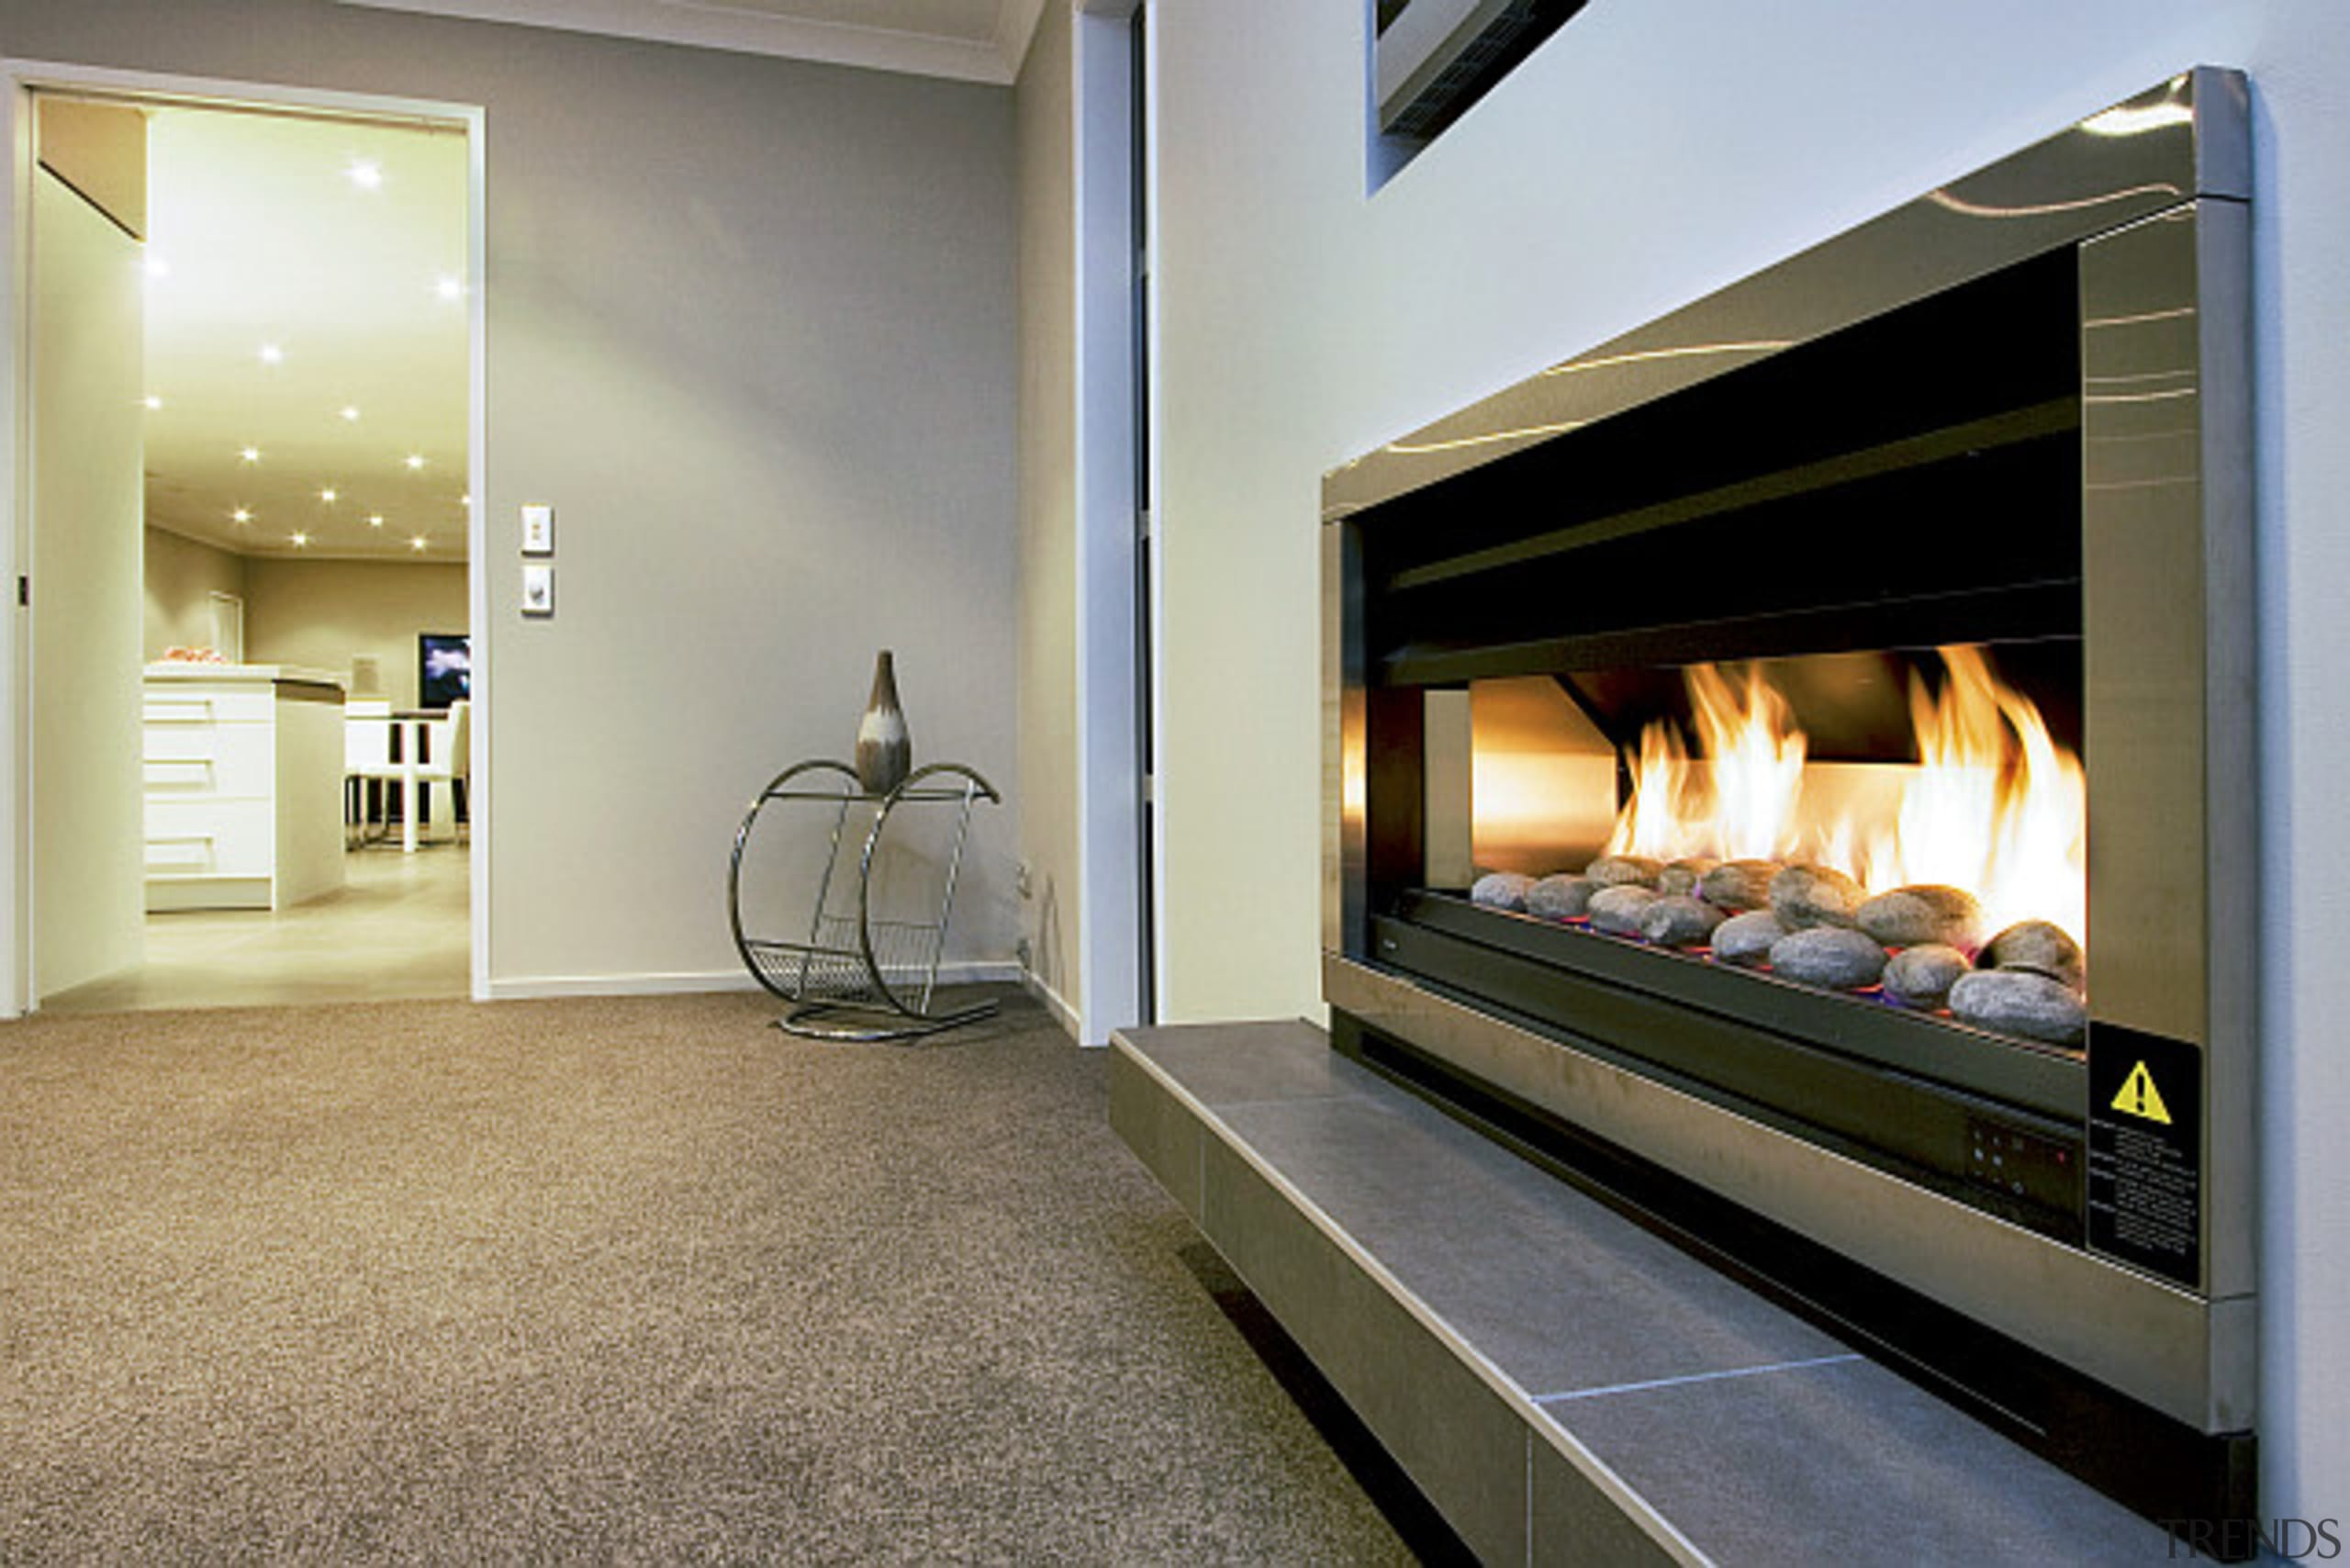 Interior living featuring modern fireplace in a home fireplace, flooring, hearth, home appliance, interior design, gray